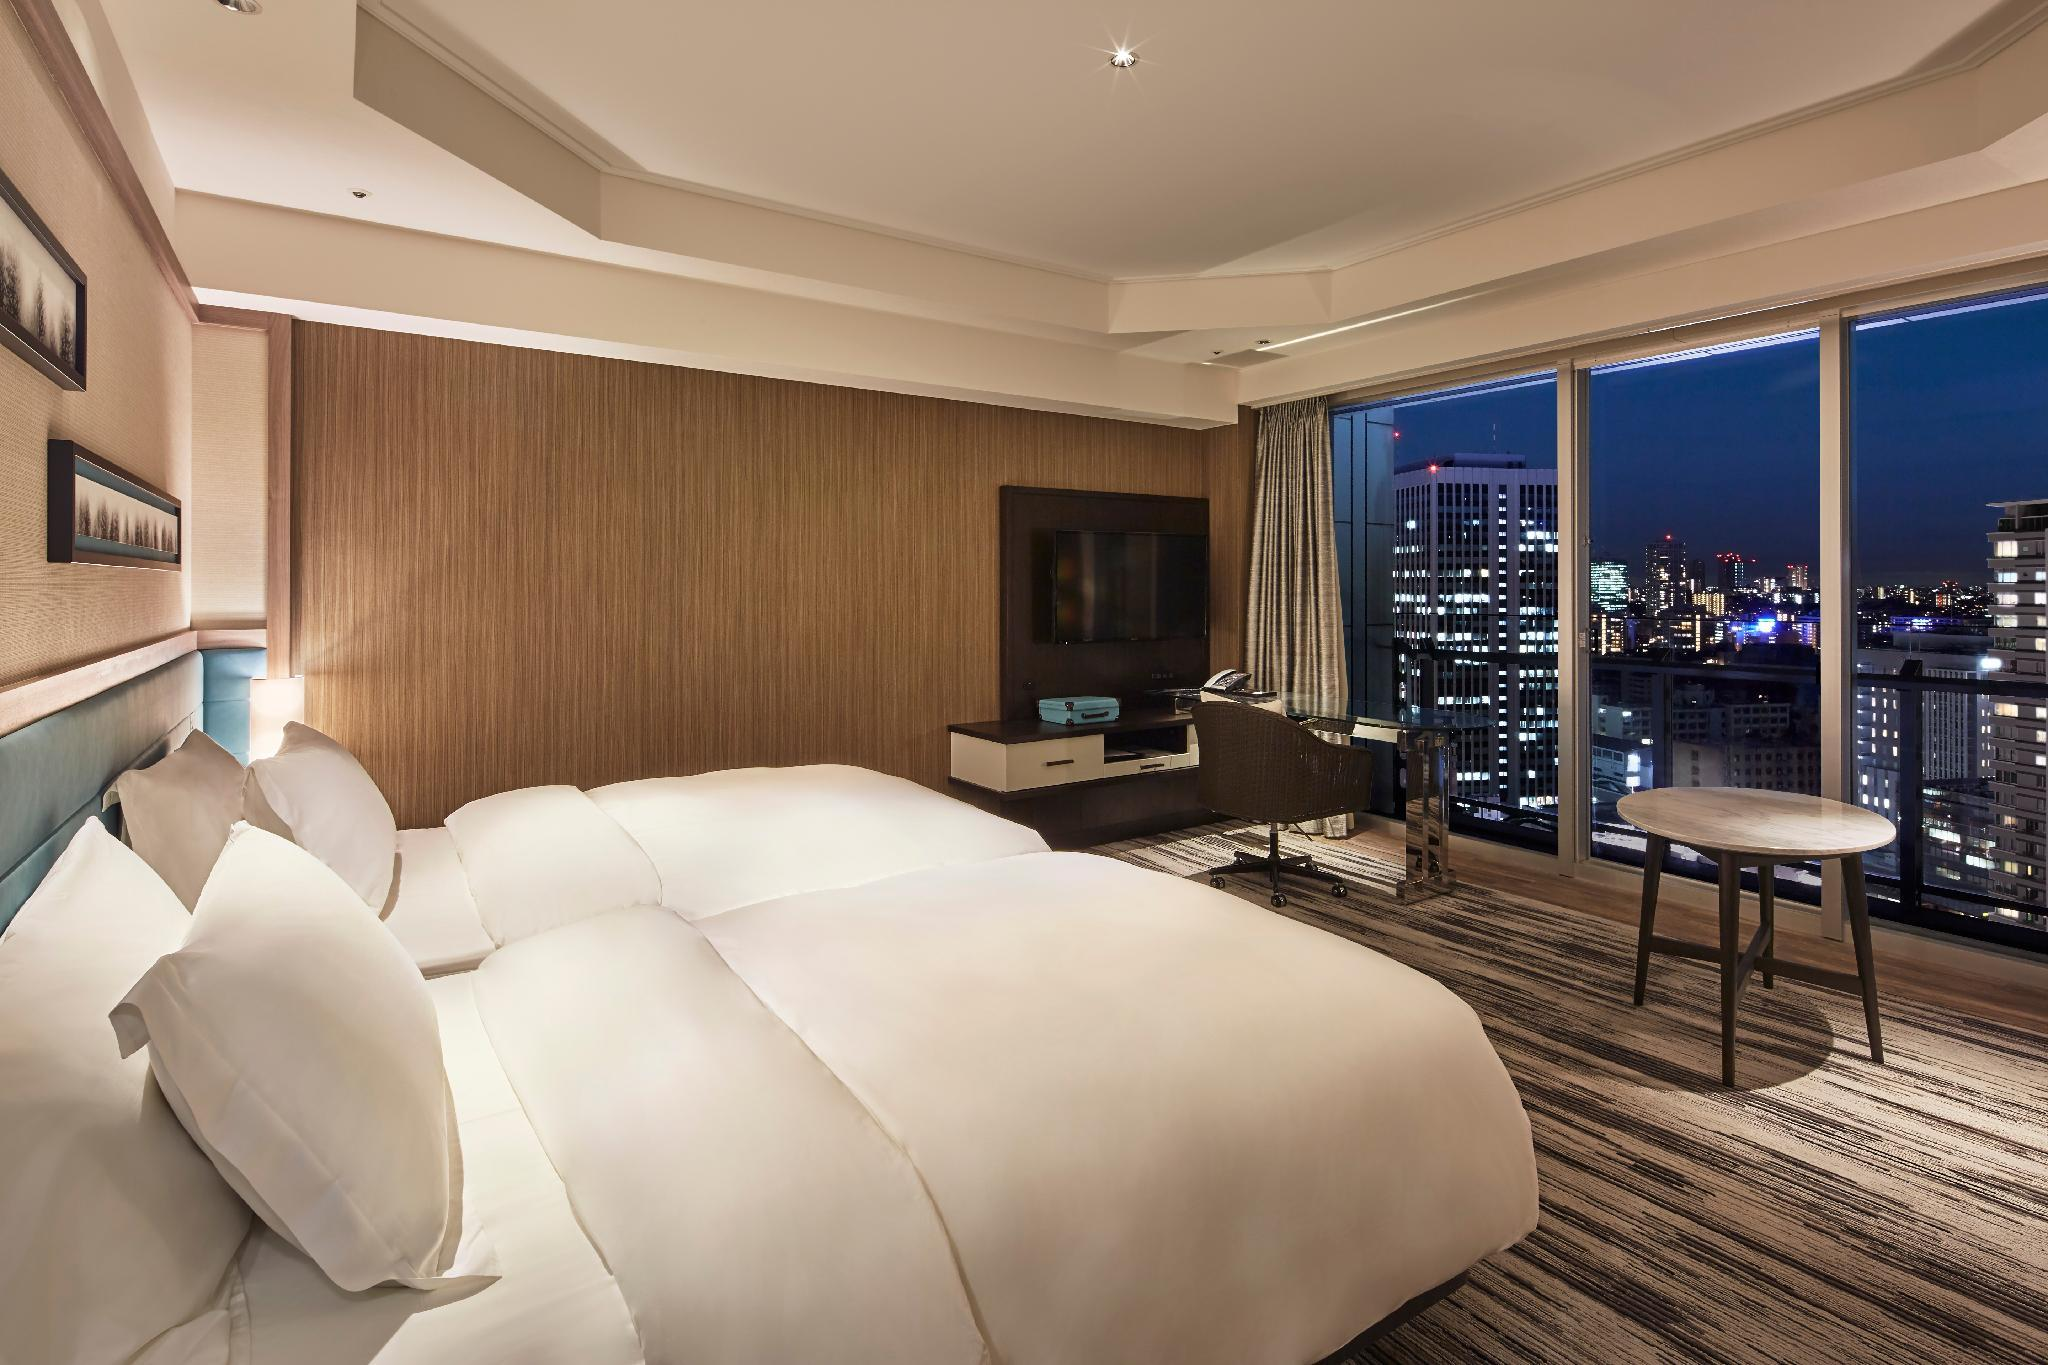 【全新裝修】客房(兩床/全景層) - 禁煙 (Panoramic Floor Twin Room - Newly Renovated, Non-Smoking)